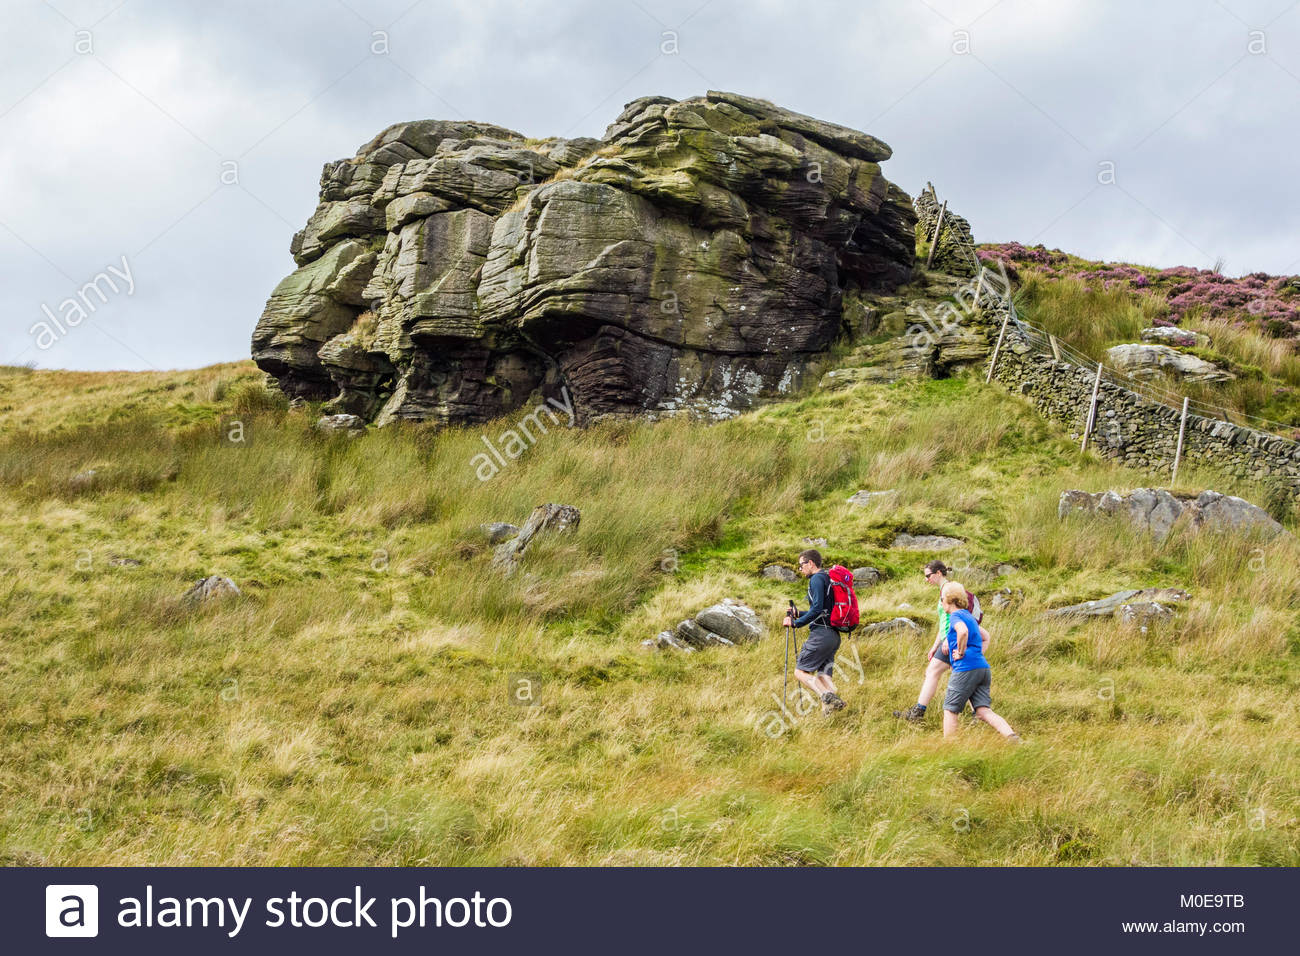 Walkers near to Cold Stone in the Forest of Bowland in Lancashire, an Area of Outstanding Natural Beauty (AONB) - Stock Image